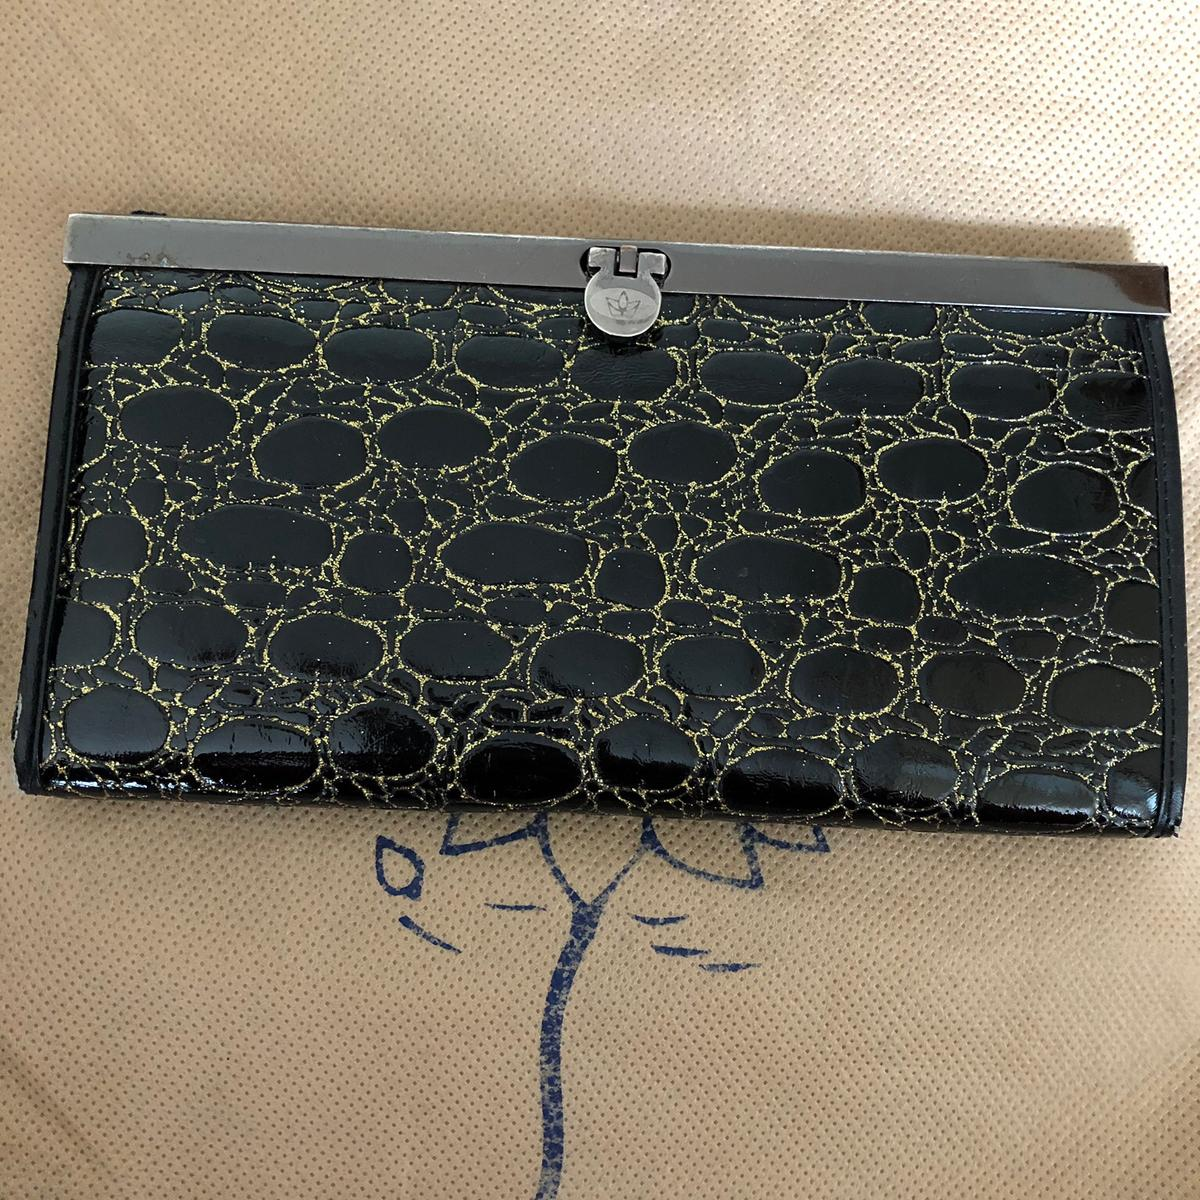 Used condition Please look at my other items